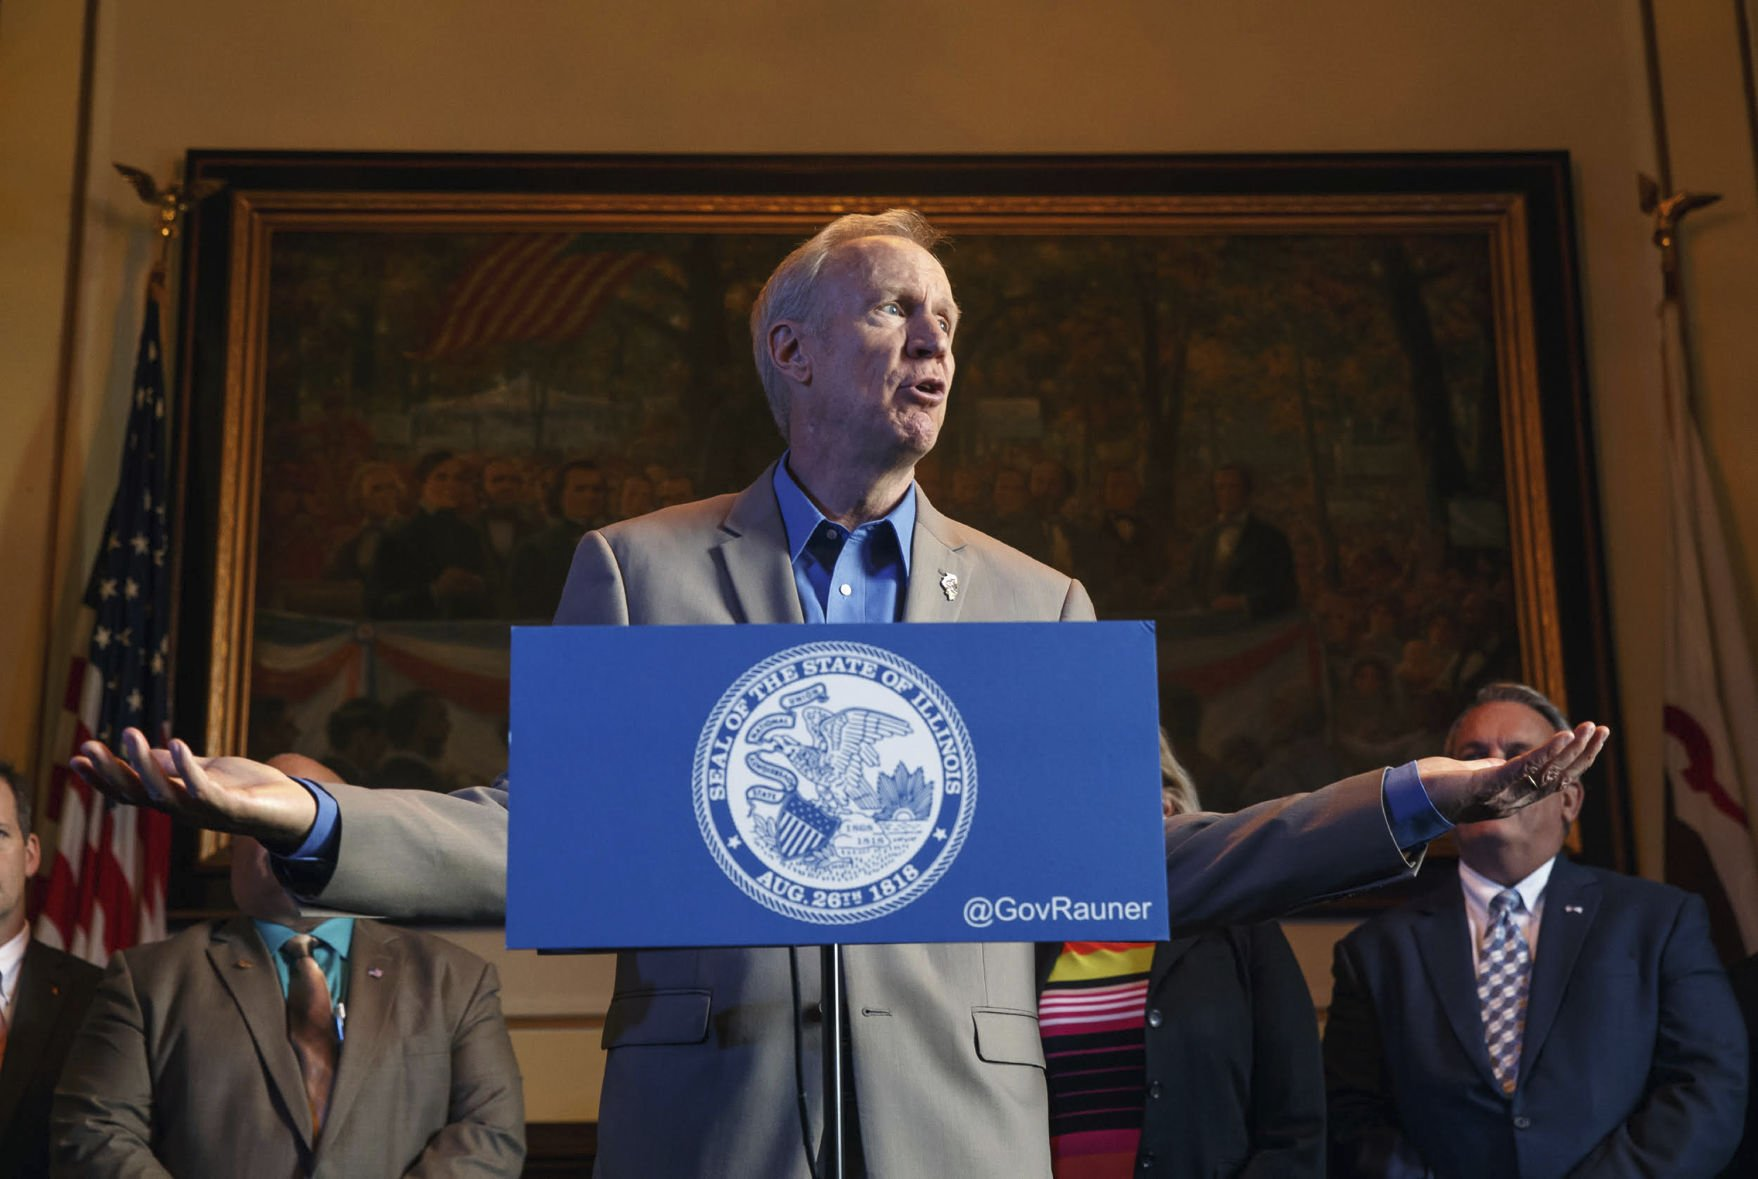 Governor's Day at State Fair: Rauner on the attack